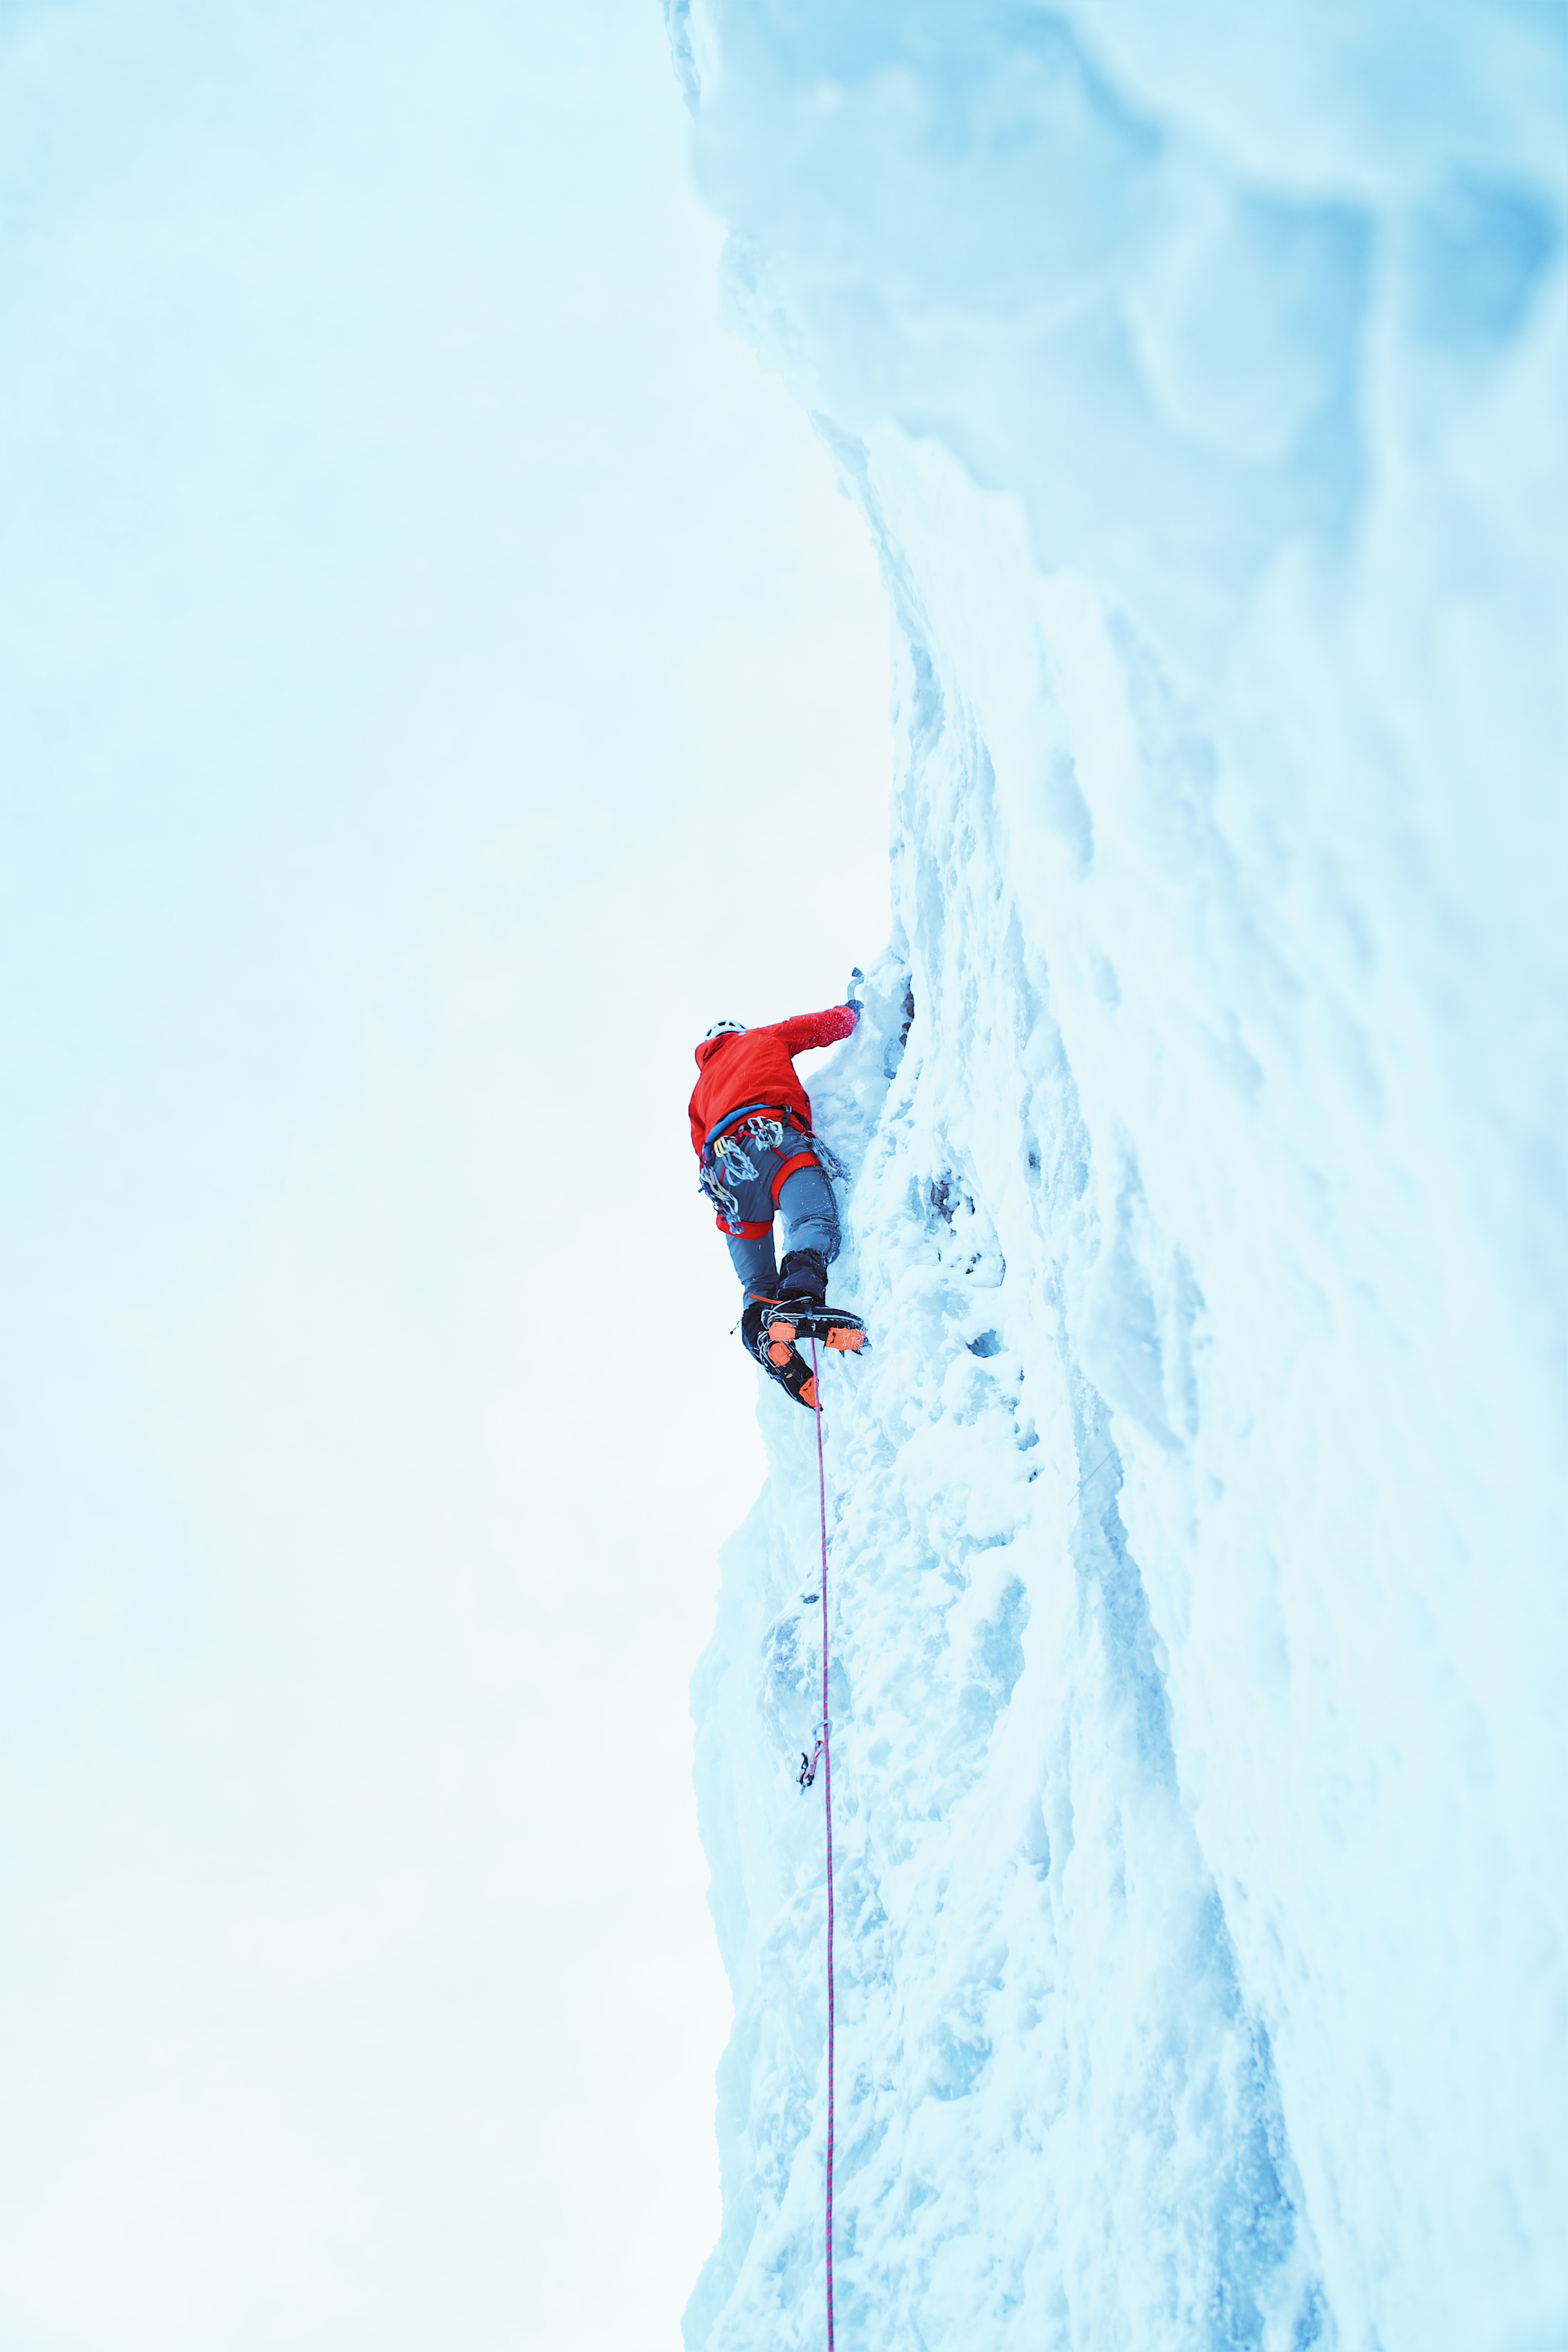 Man climbing an icy wall